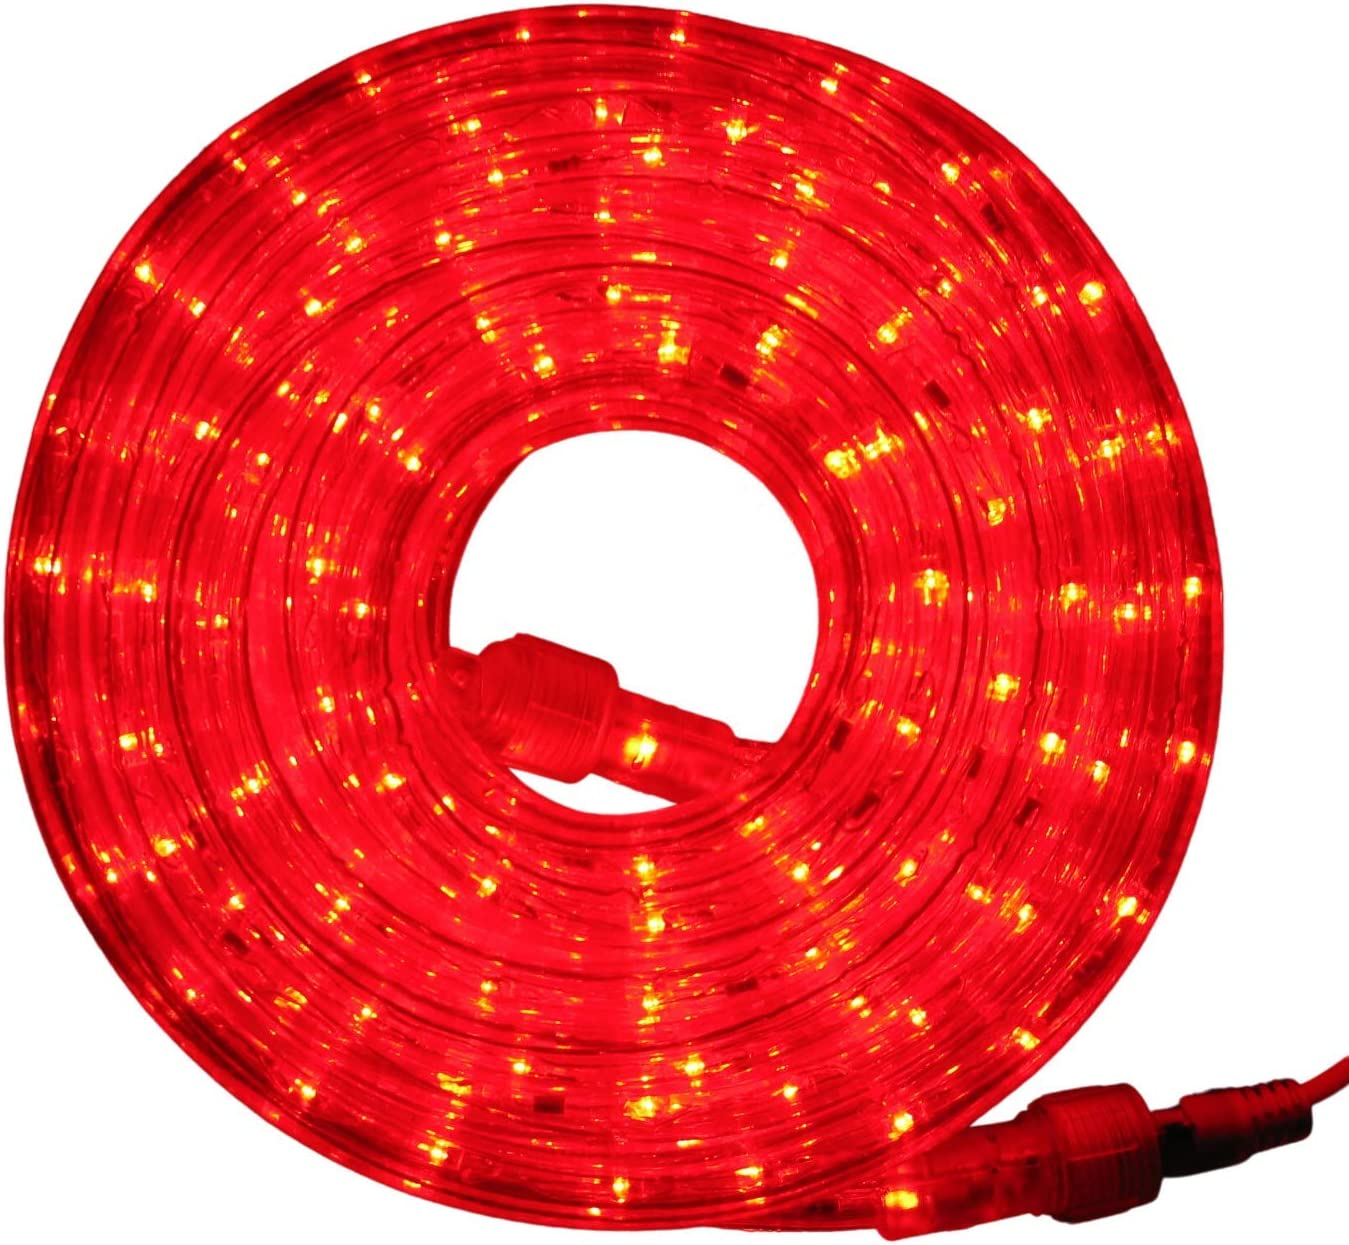 "Flexilight LED Rope Light 110V - 120V 2-Wire 1/2"" Diameter Extendable Indoor Outdoor Home Decoration Christmas Party Parade Fence Cove Lighting Accent Lighting (Red, 30Ft)"